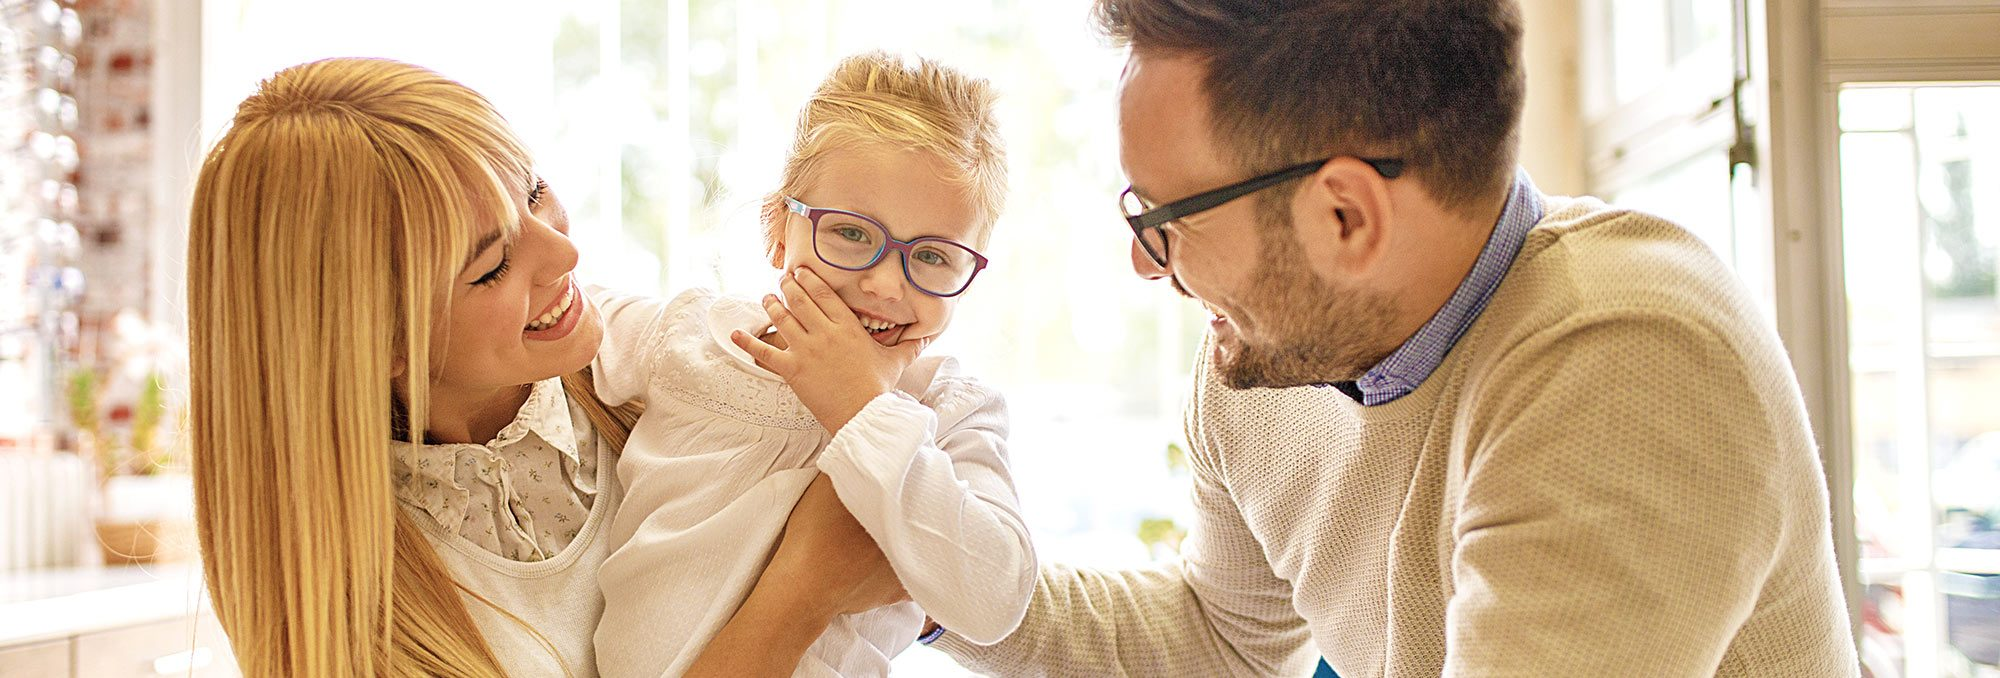 Young family trying on glasses together at optical shop